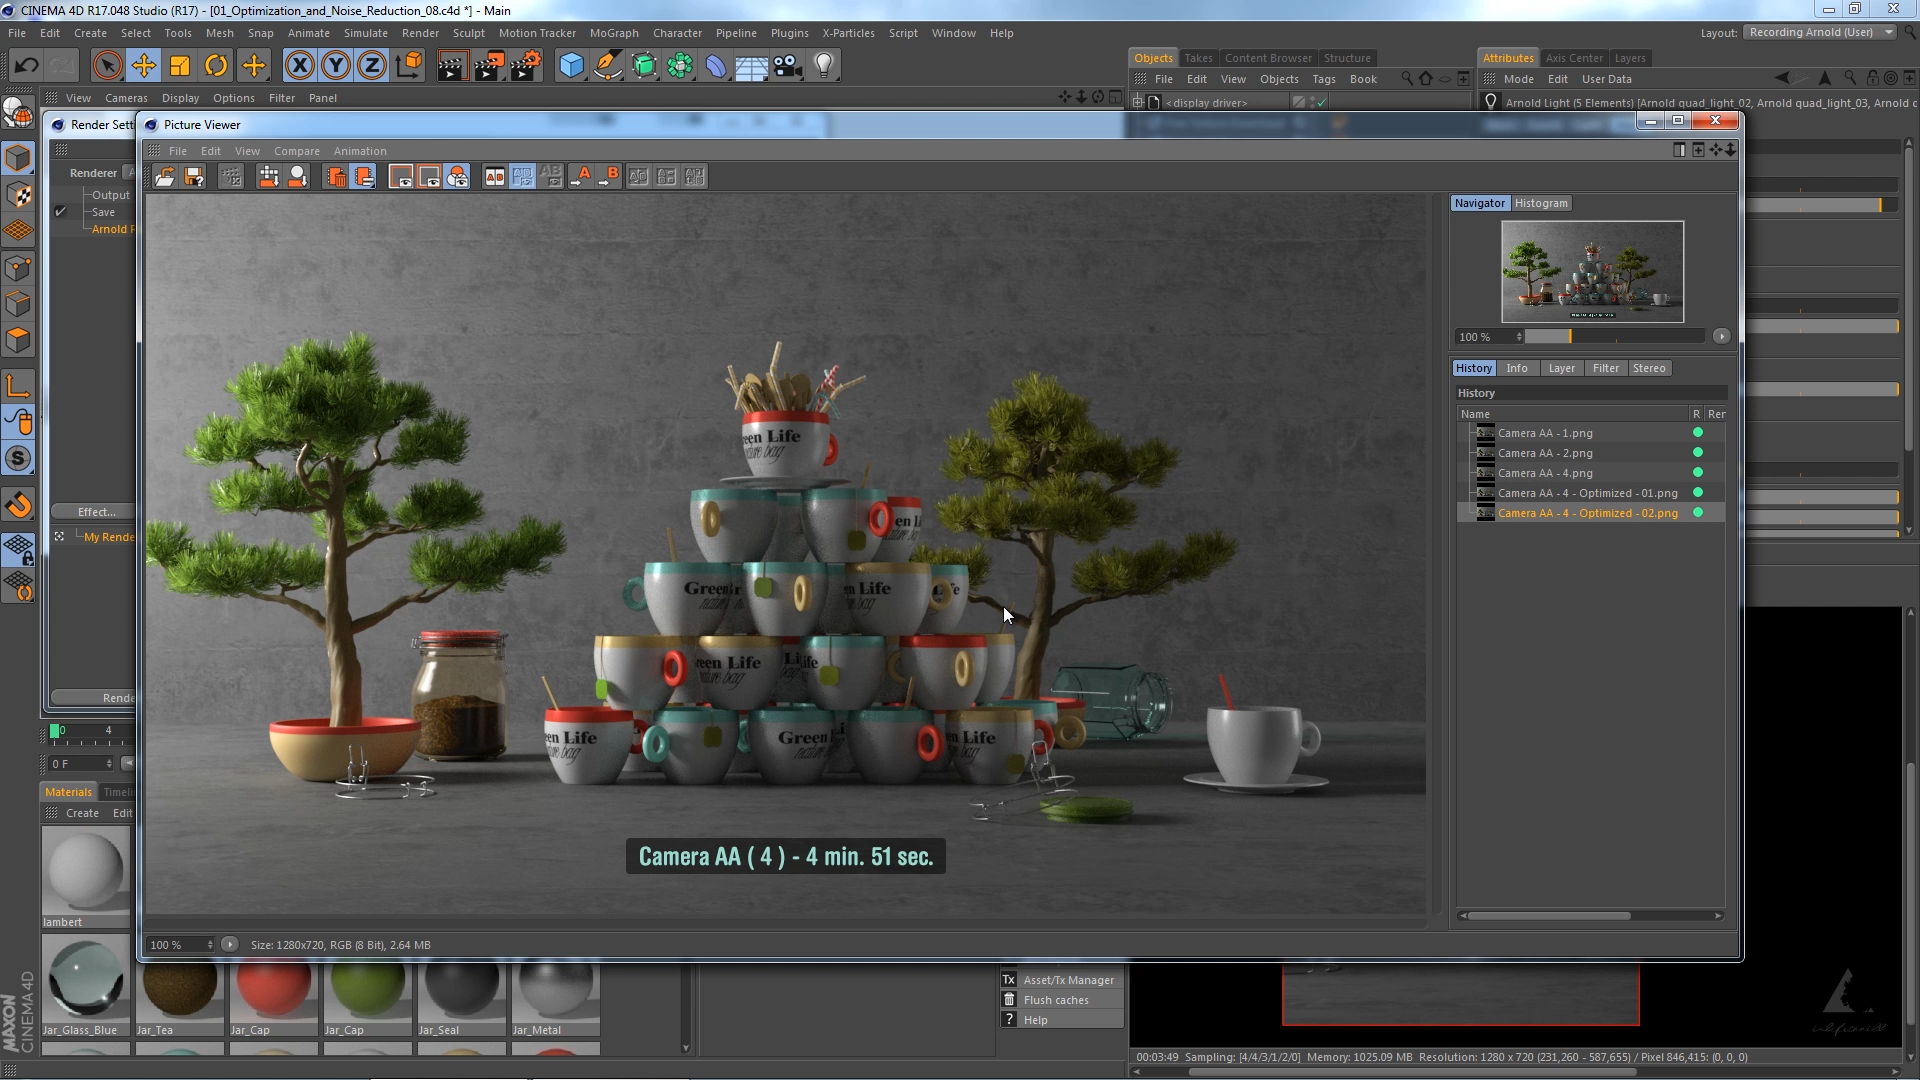 Cinema 4D: pros, cons, quirks, and links - iMeshup - Medium